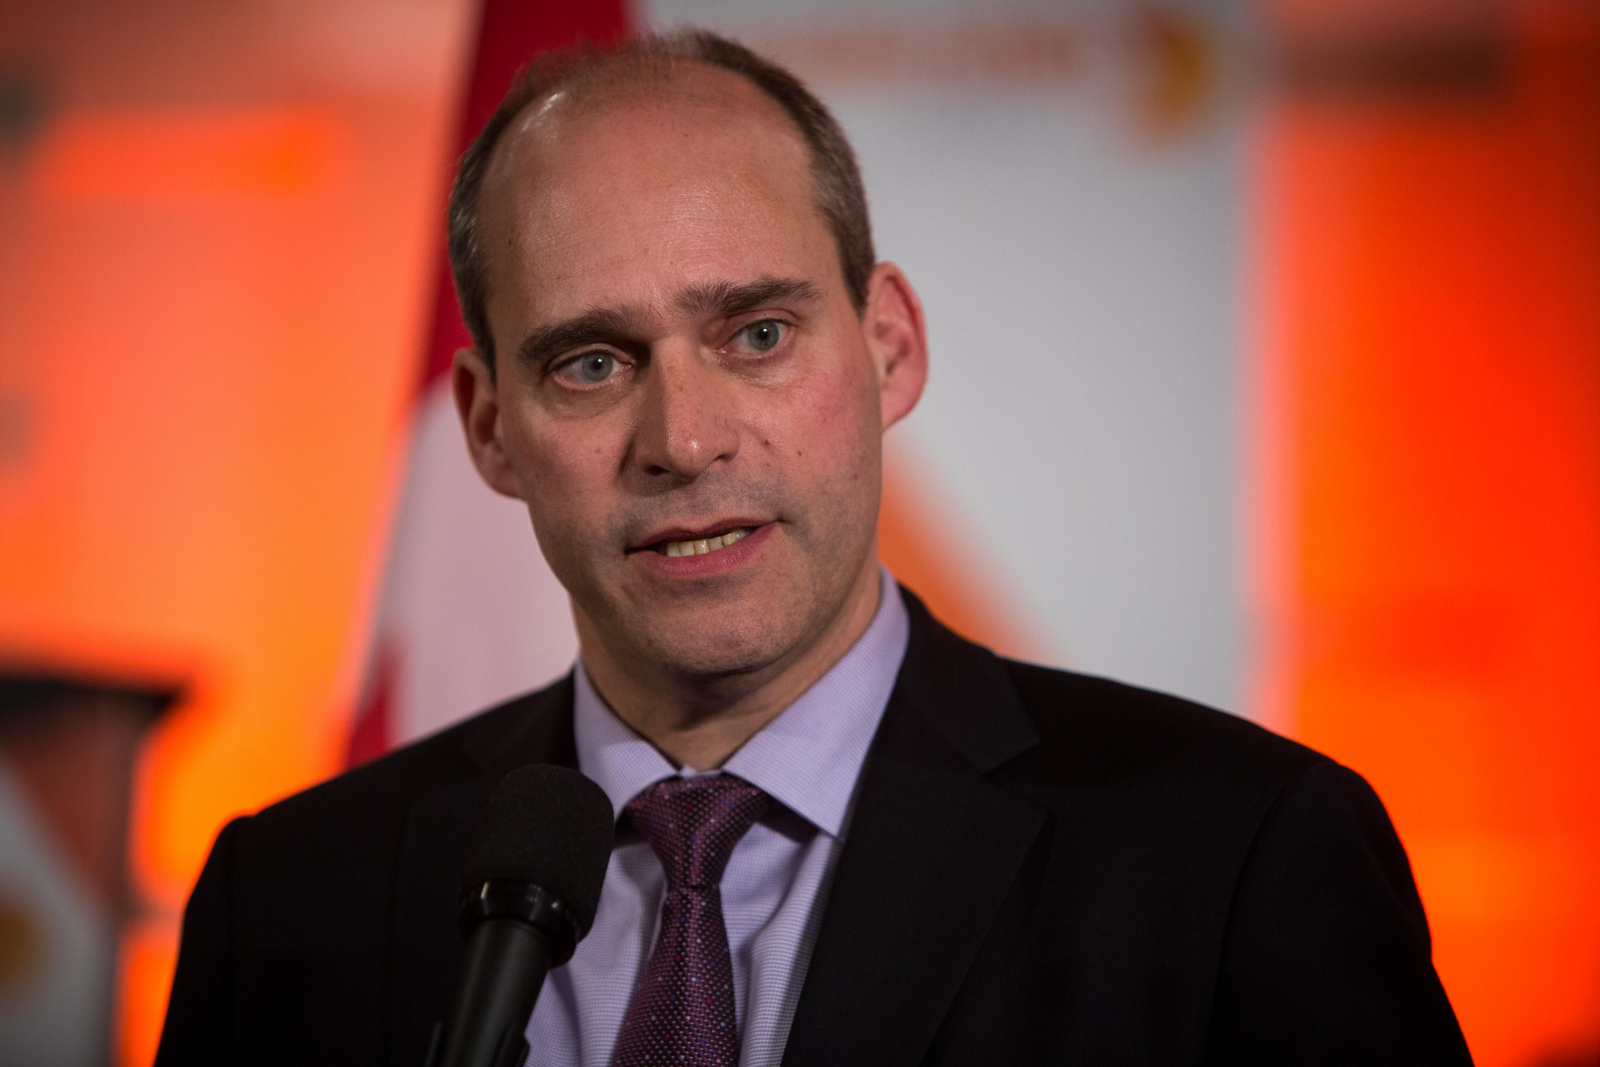 NDP Leadership hopeful Guy Caron, scrum, Ottawa